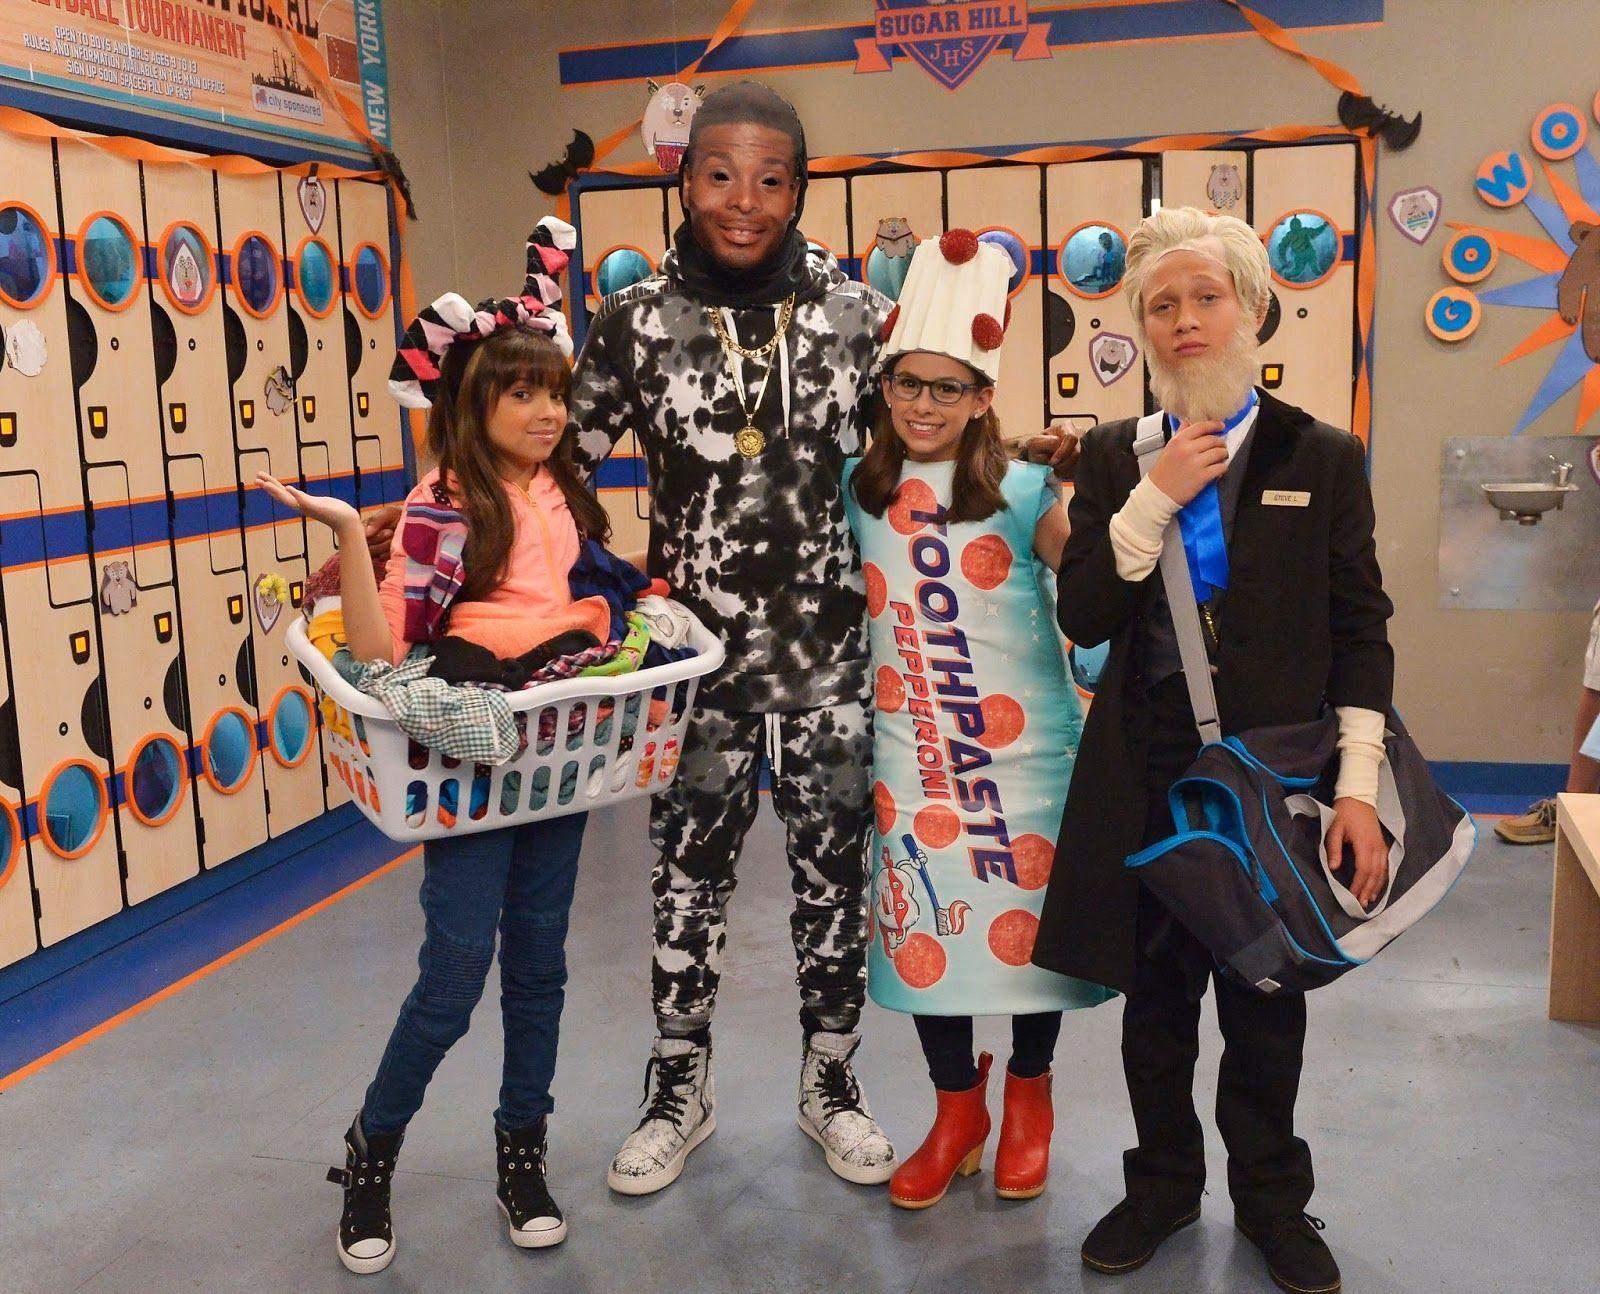 site to download game shakers